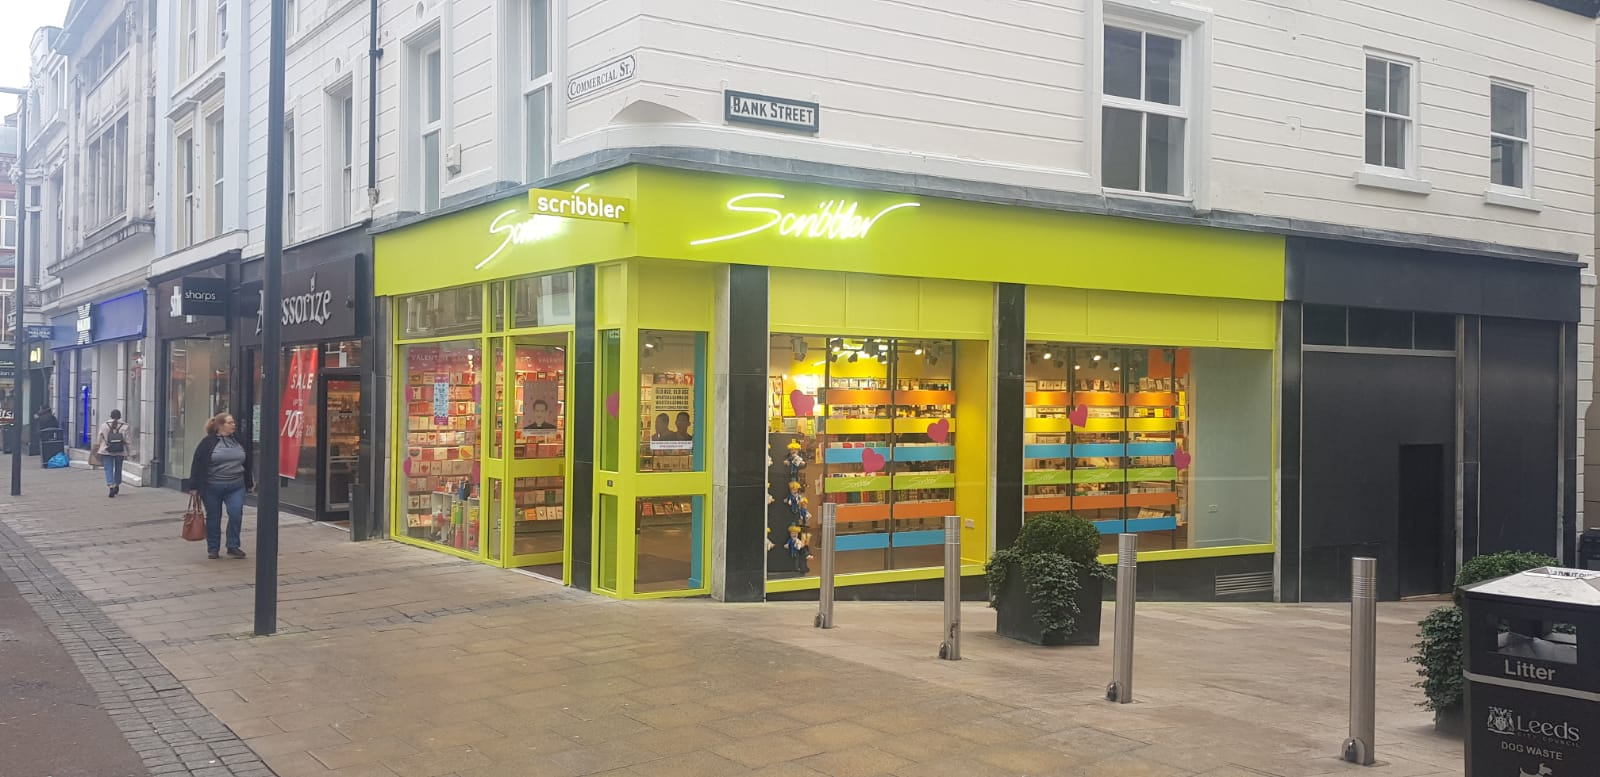 Above: The corner sited store means that customers are attracted to the well-lit windows from both directions.